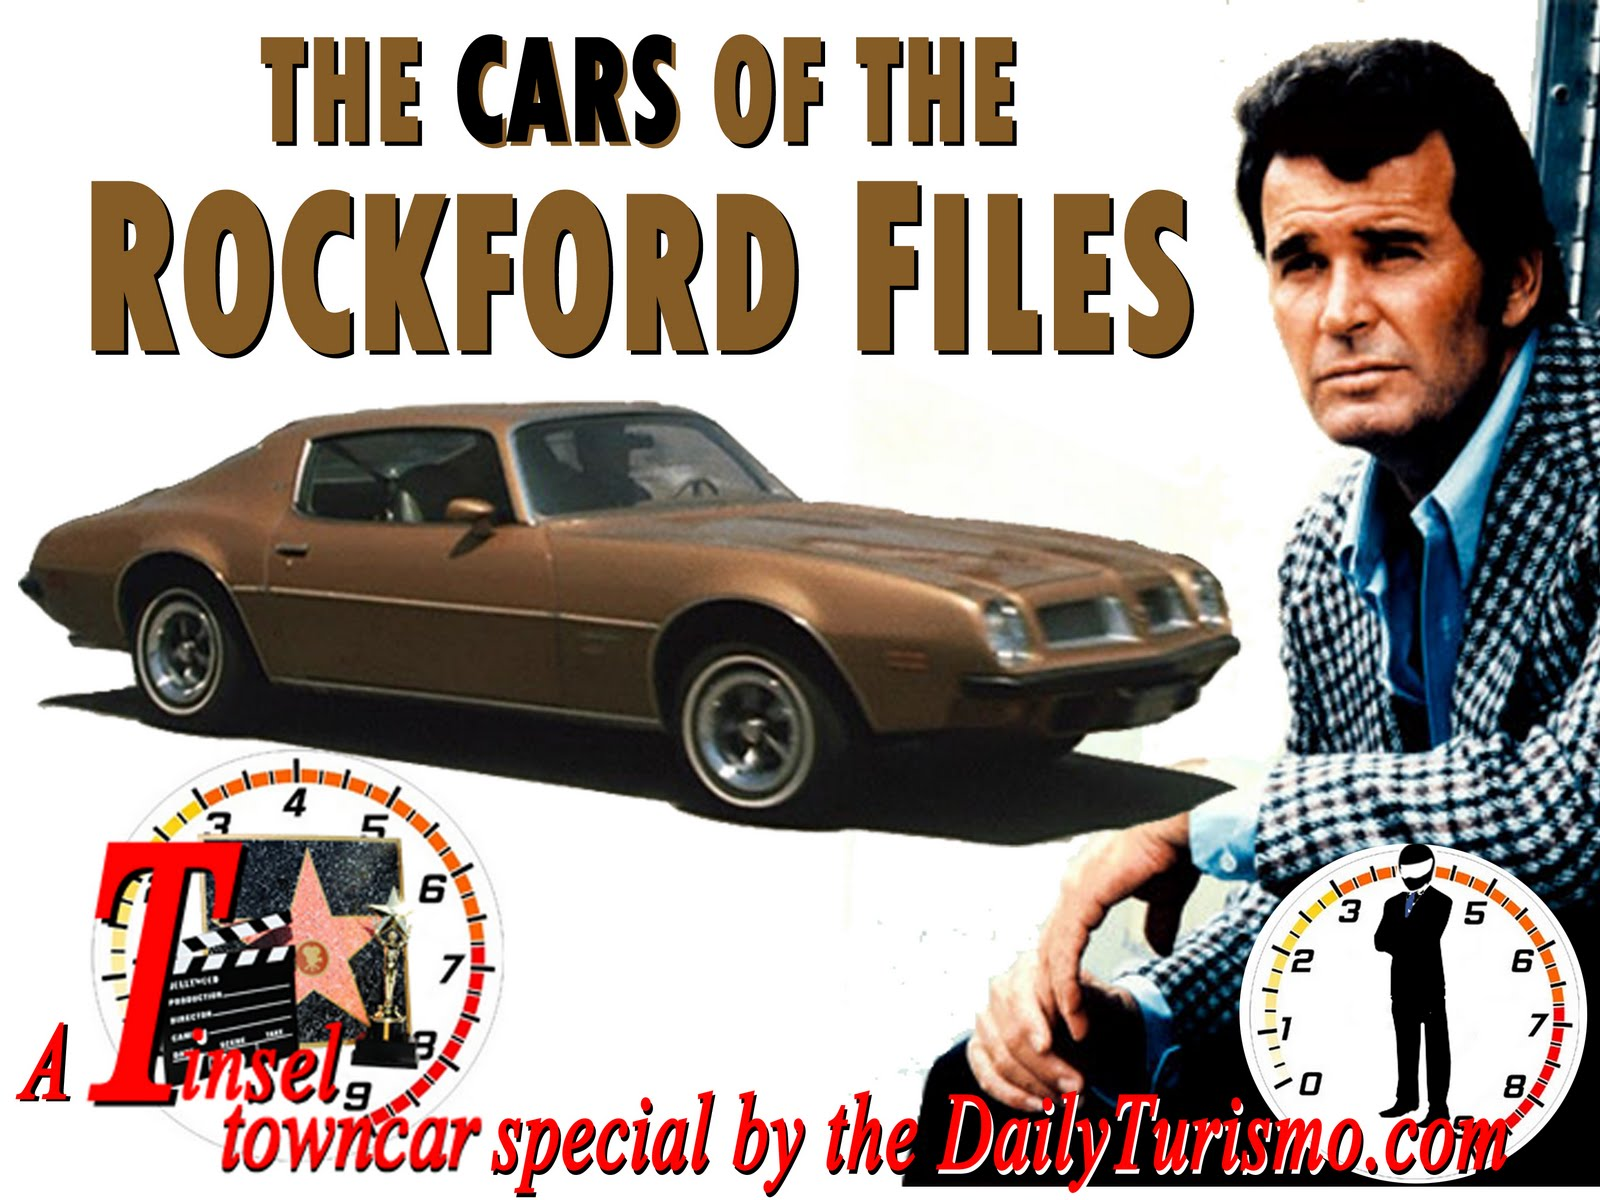 DT Tinsel Towncar Feature: The Cars of the Rockford Files